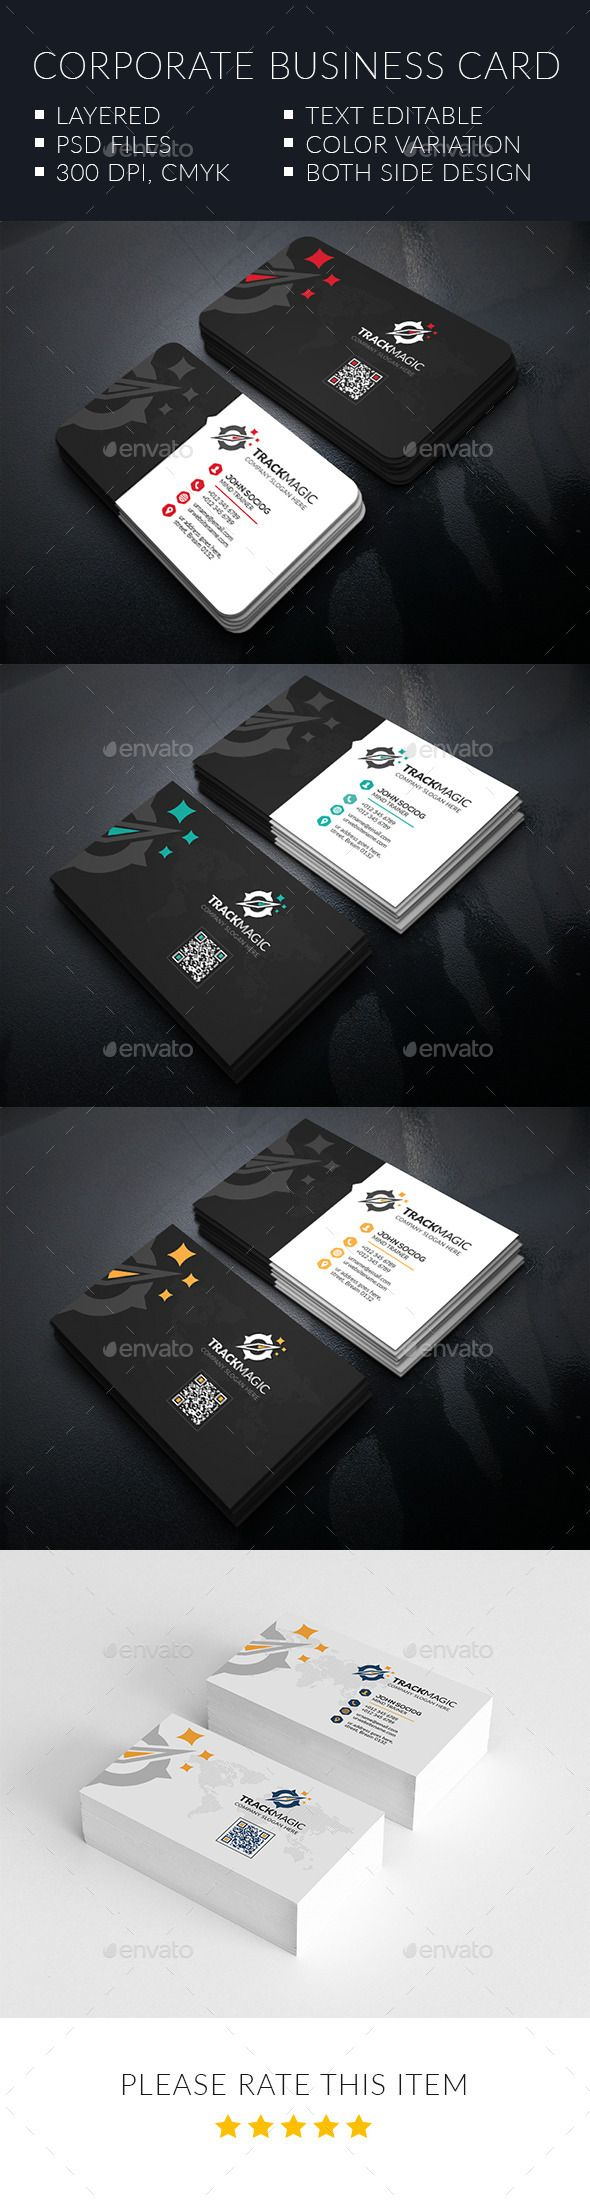 pin by best graphic design on business card templates pinterest